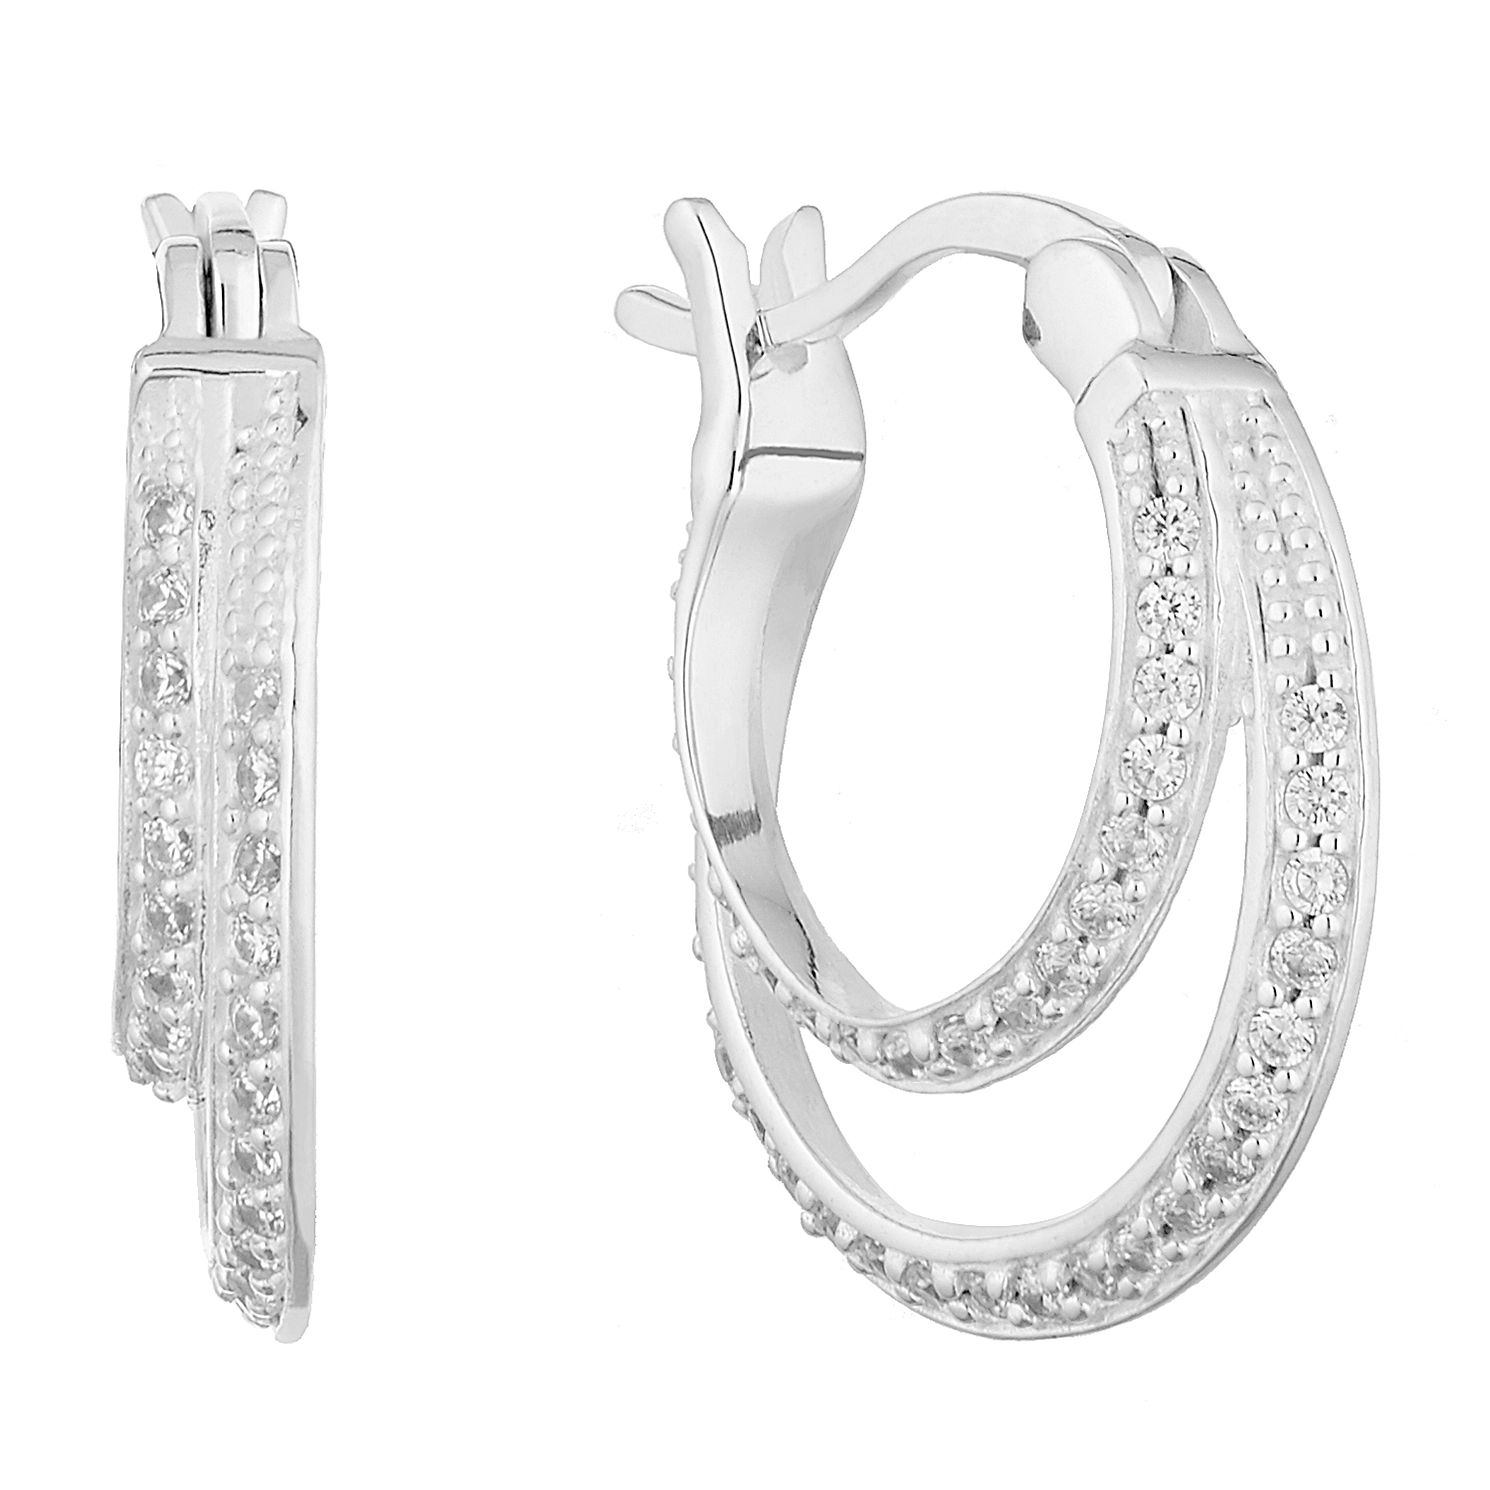 Silver Cubic Zirconia Creole Earrings - Product number 9734953